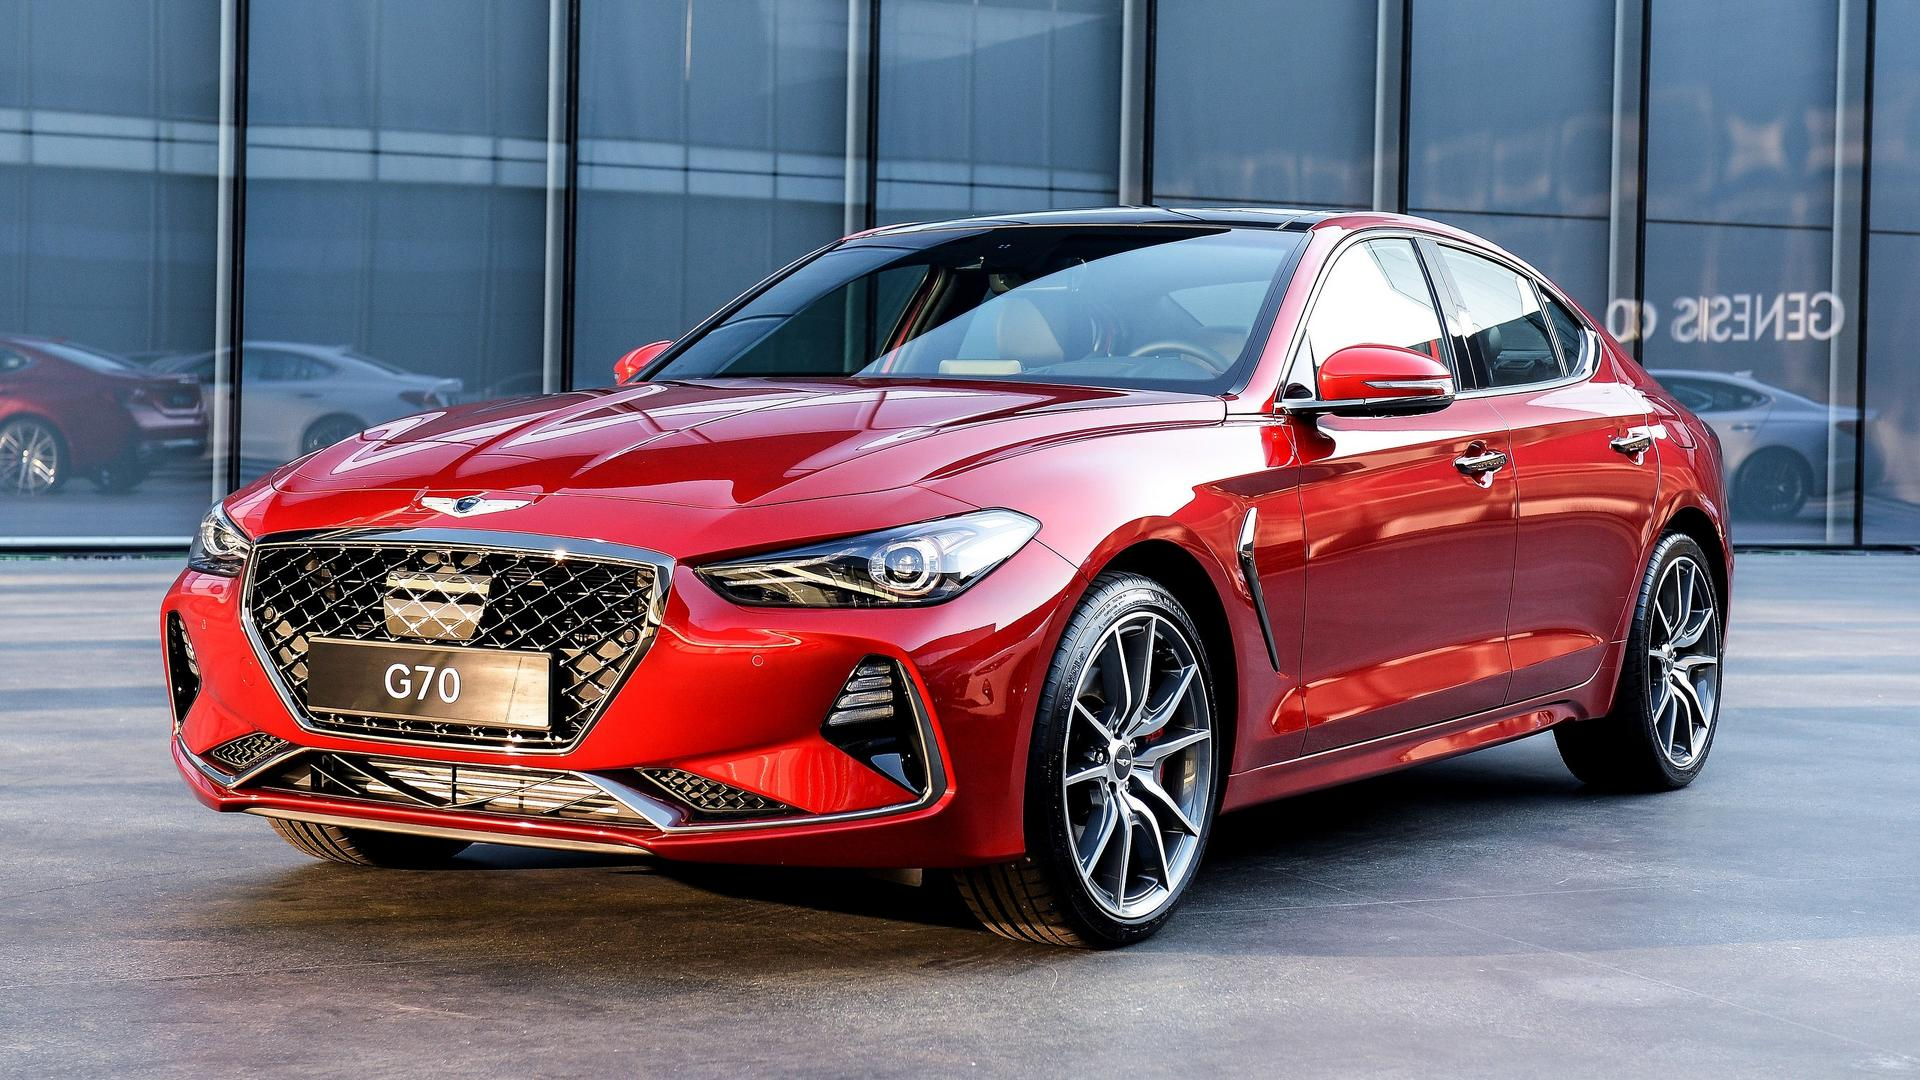 2018 genesis g70 sports sedan goes official looks fairly premium autoevolution. Black Bedroom Furniture Sets. Home Design Ideas